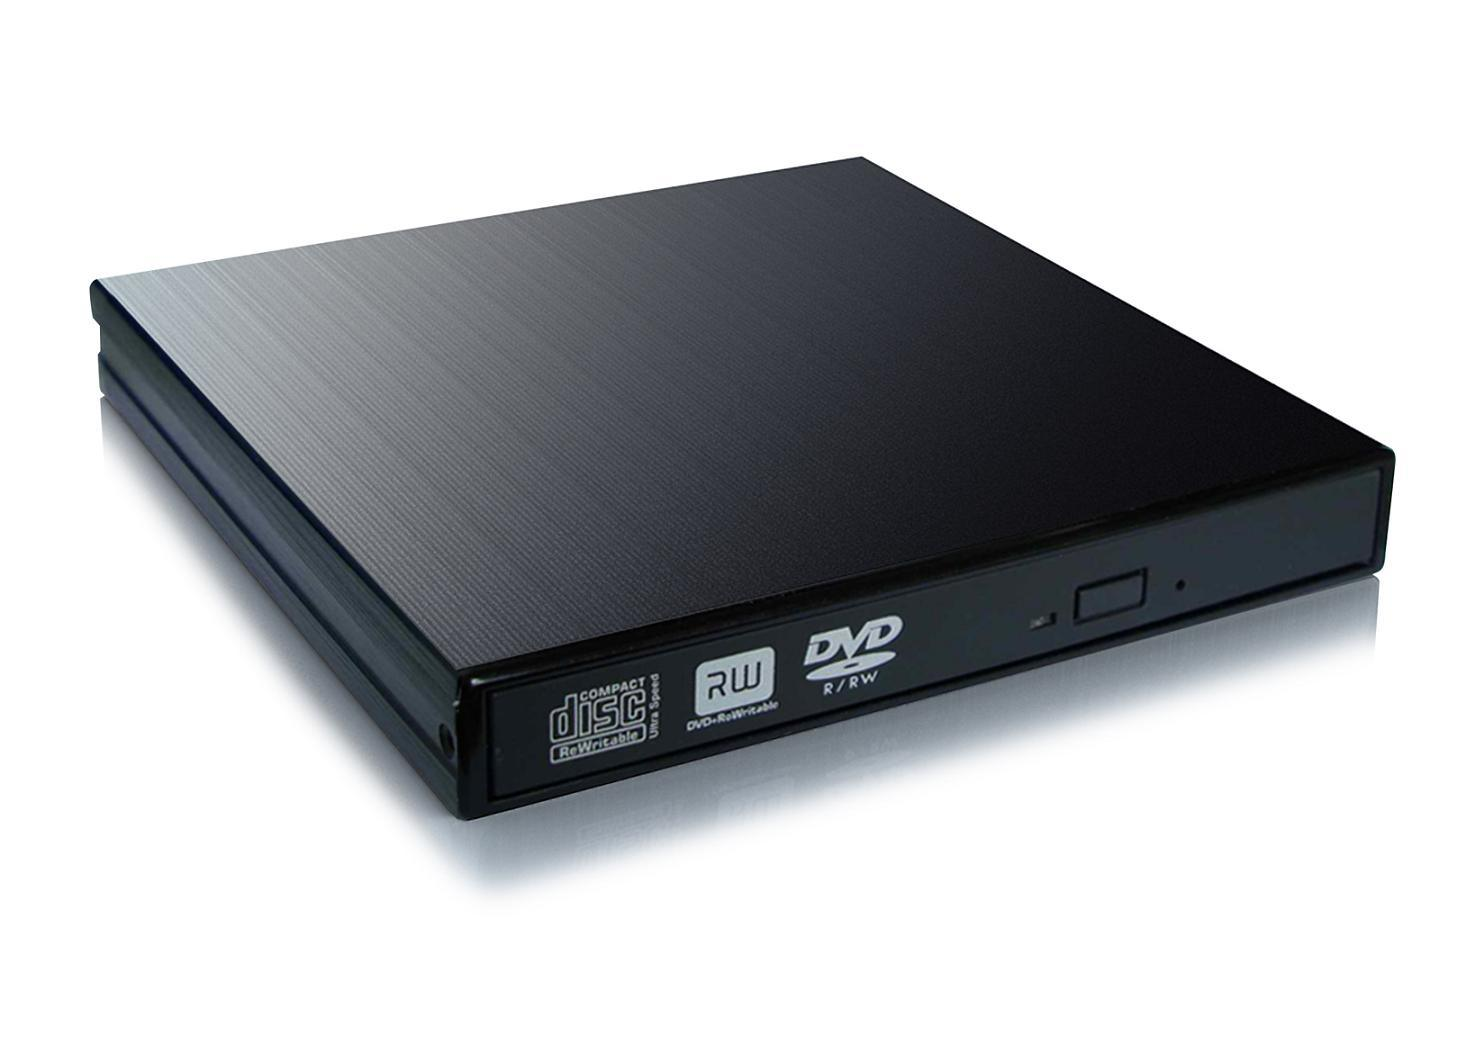 china optical drive enclosure dvd optical dvd rw cd rw stw 8003 china optical drive. Black Bedroom Furniture Sets. Home Design Ideas